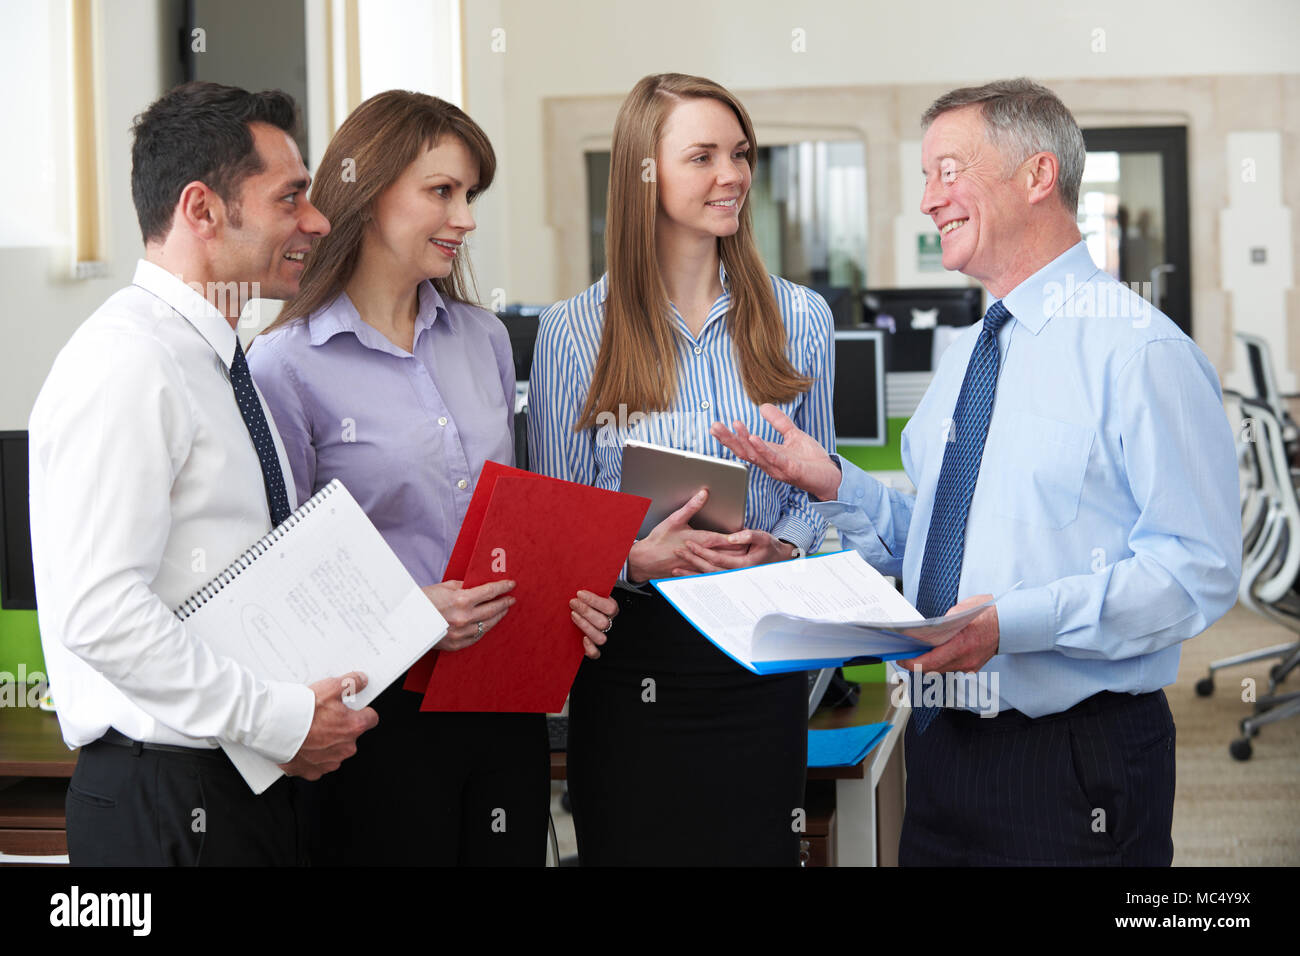 Business Team Having Meeting in Modern Office Photo Stock